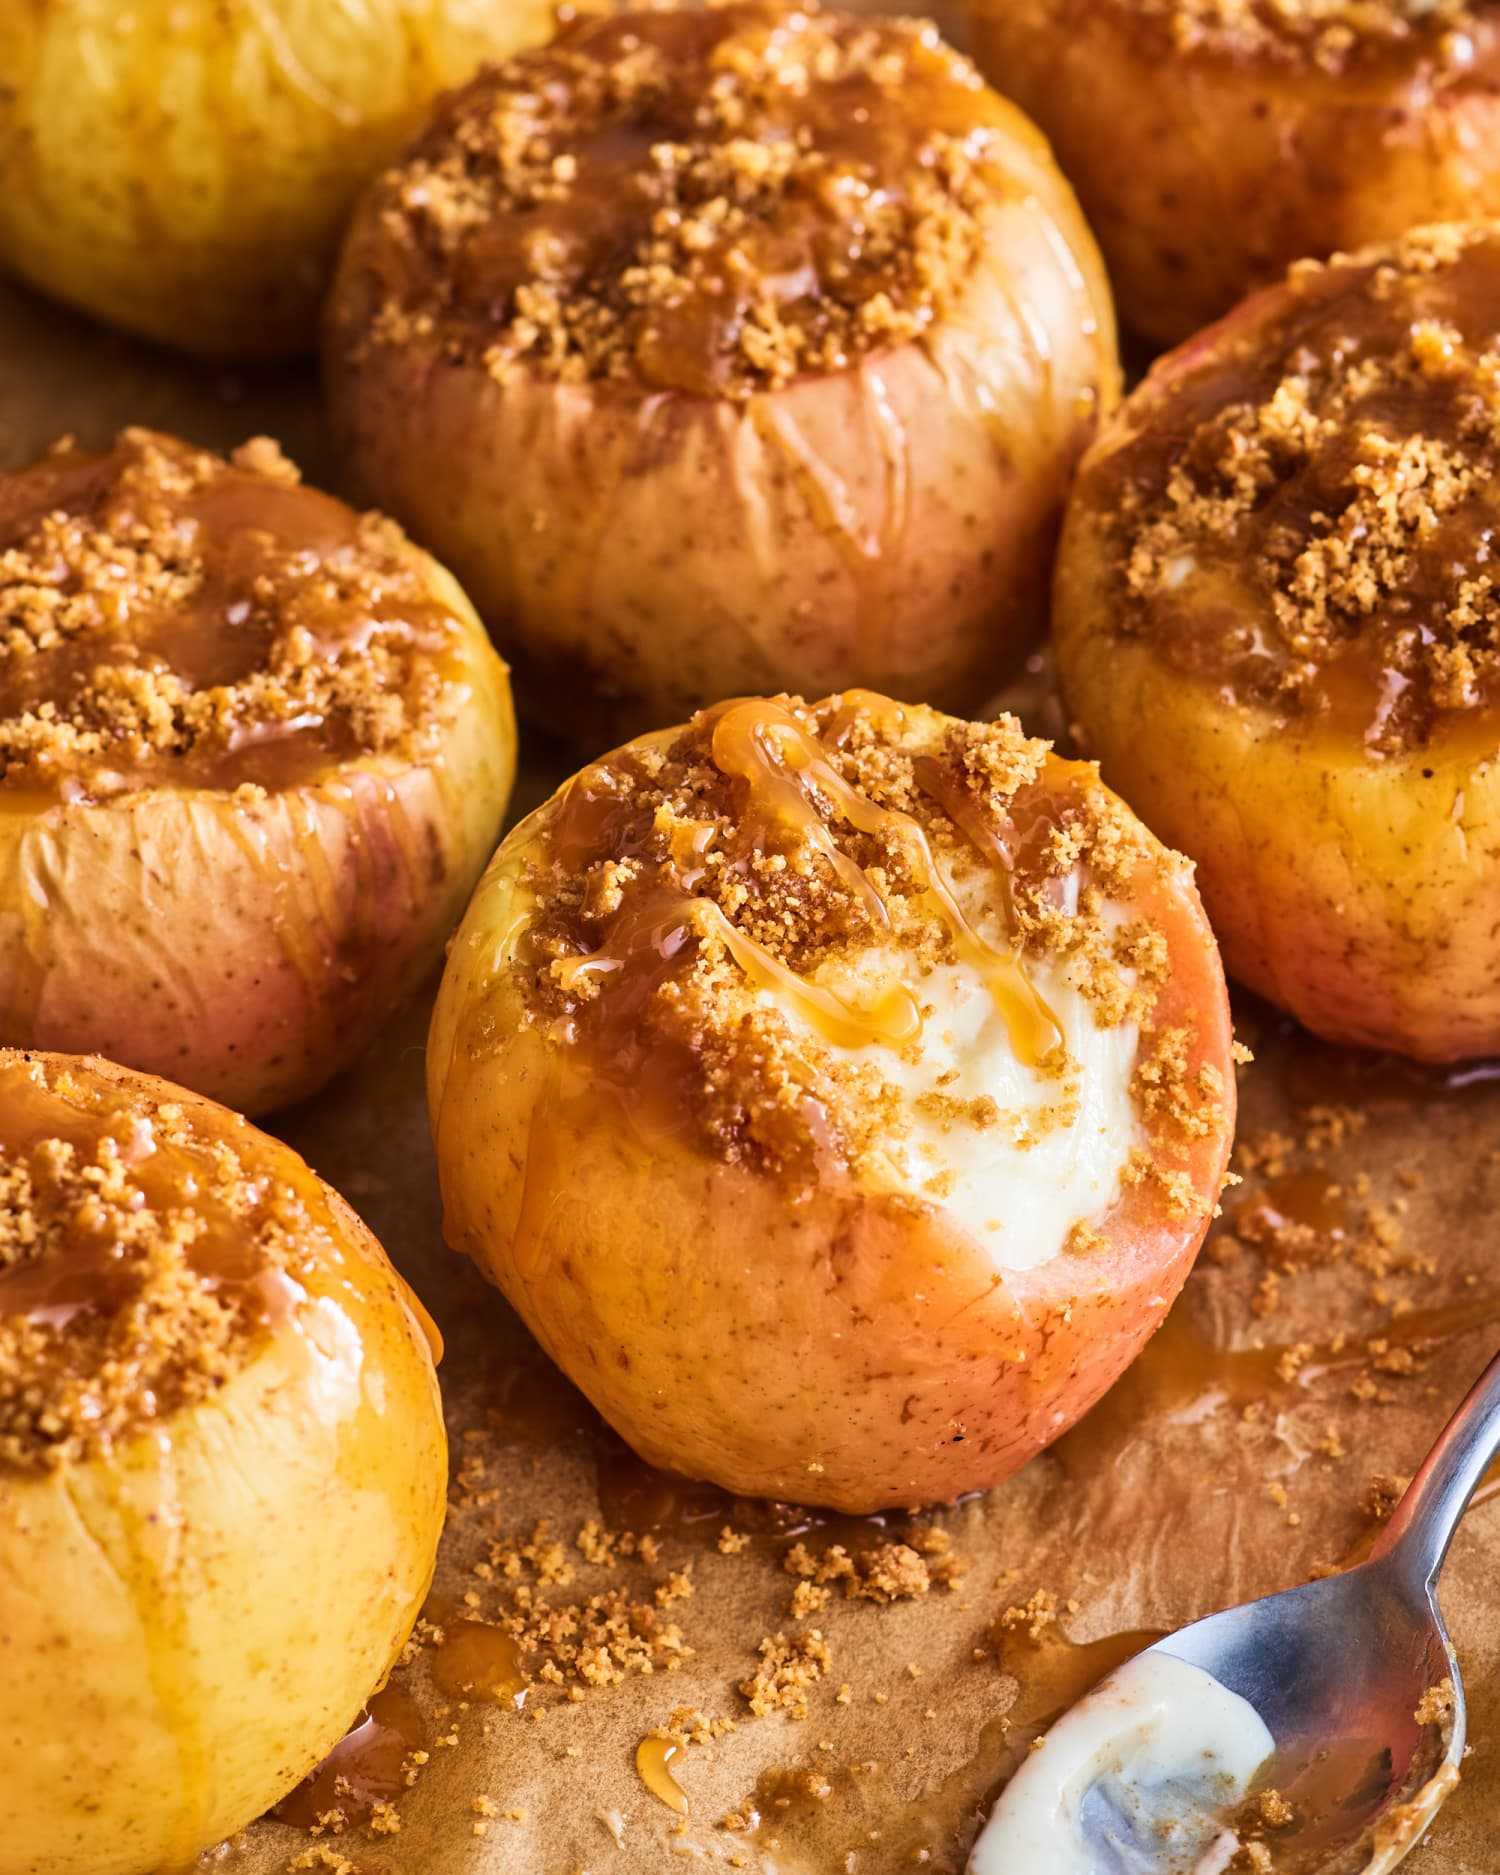 Cheesecake-Stuffed Baked Apples Are the Perfect Fall Dessert